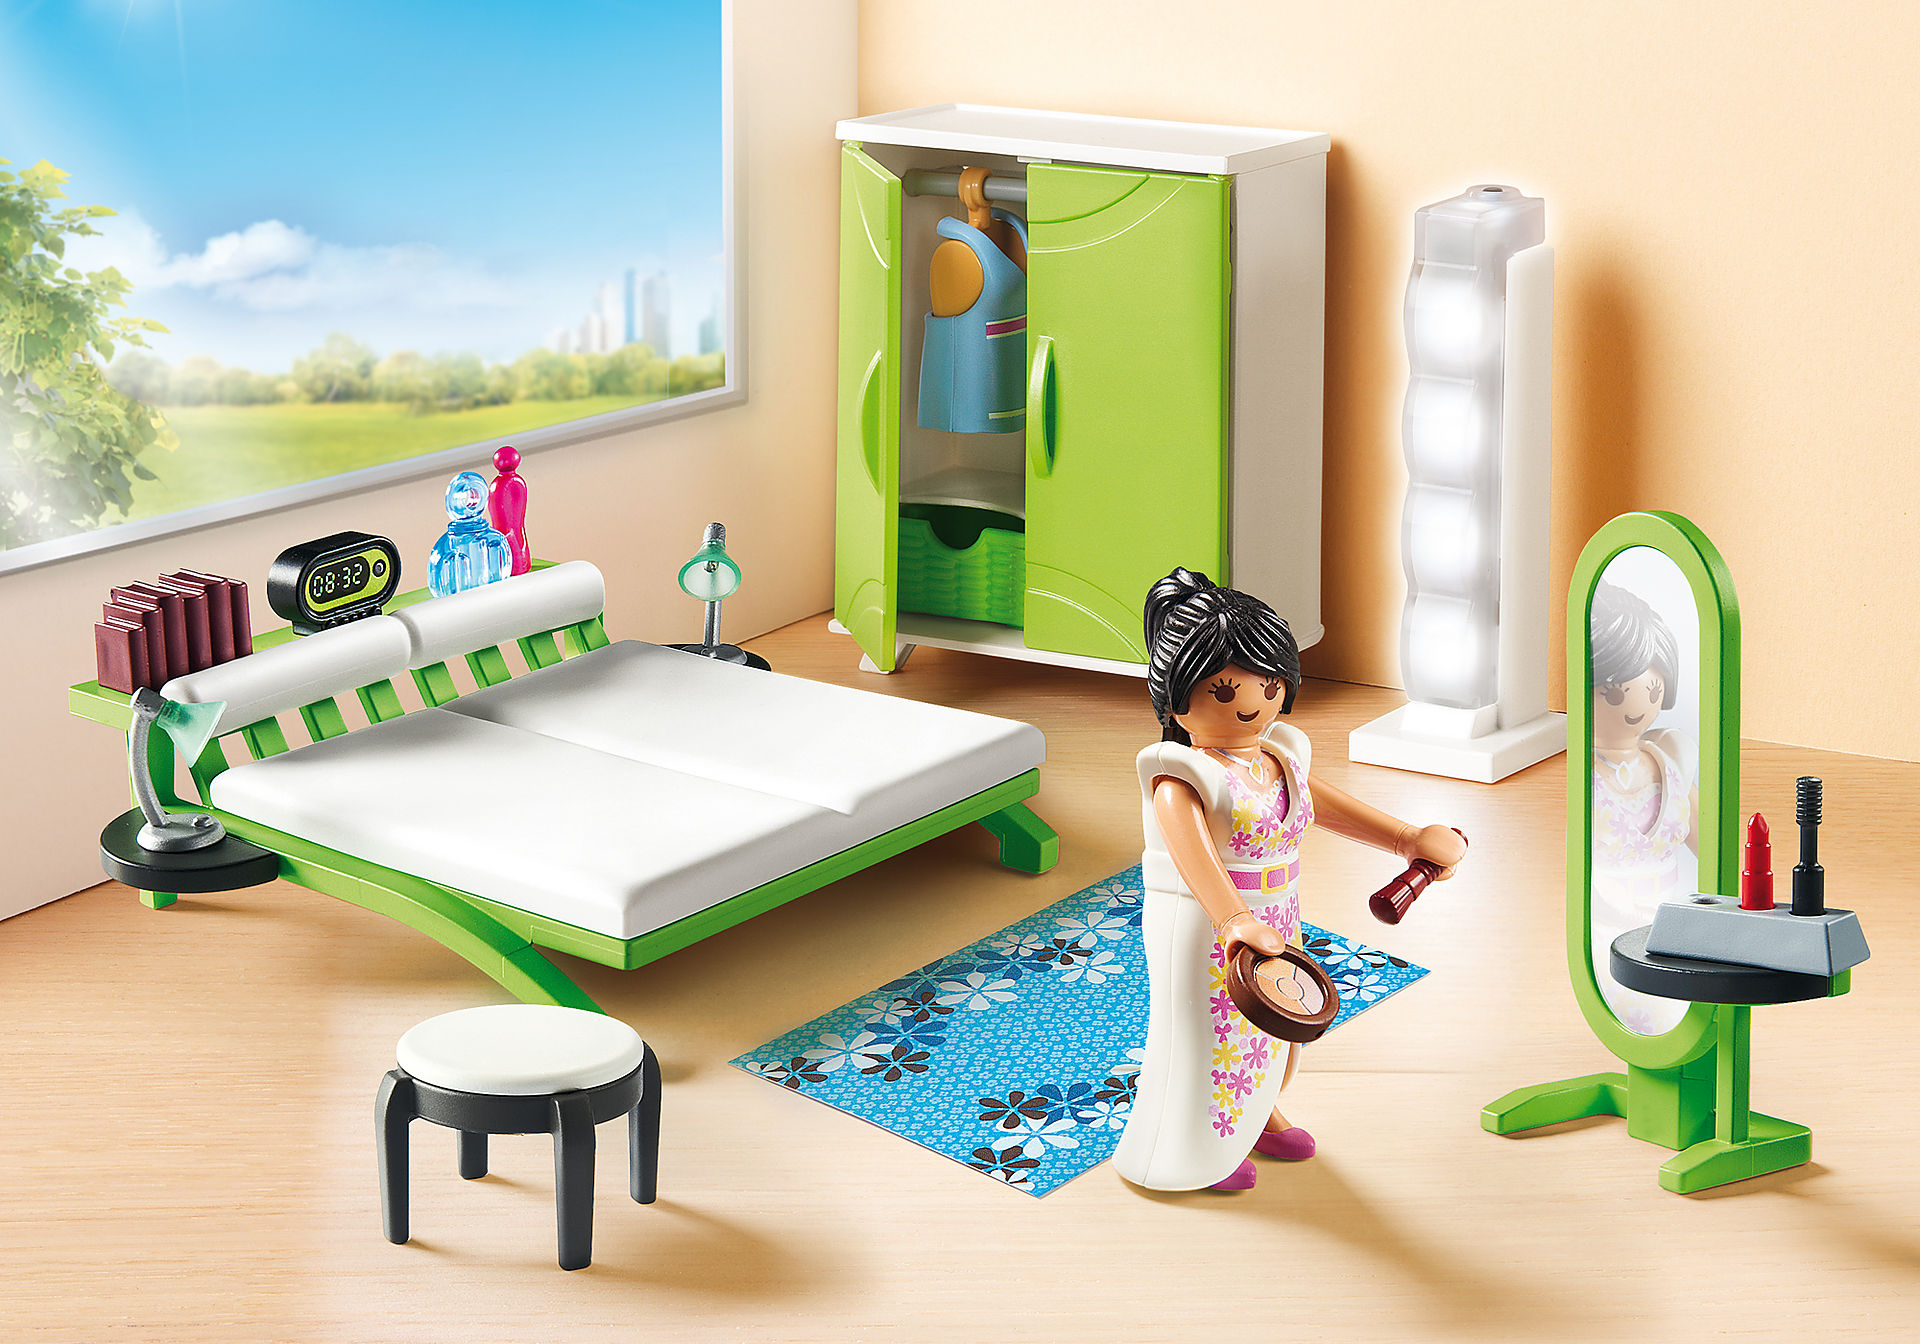 http://media.playmobil.com/i/playmobil/9271_product_detail/Dormitorio